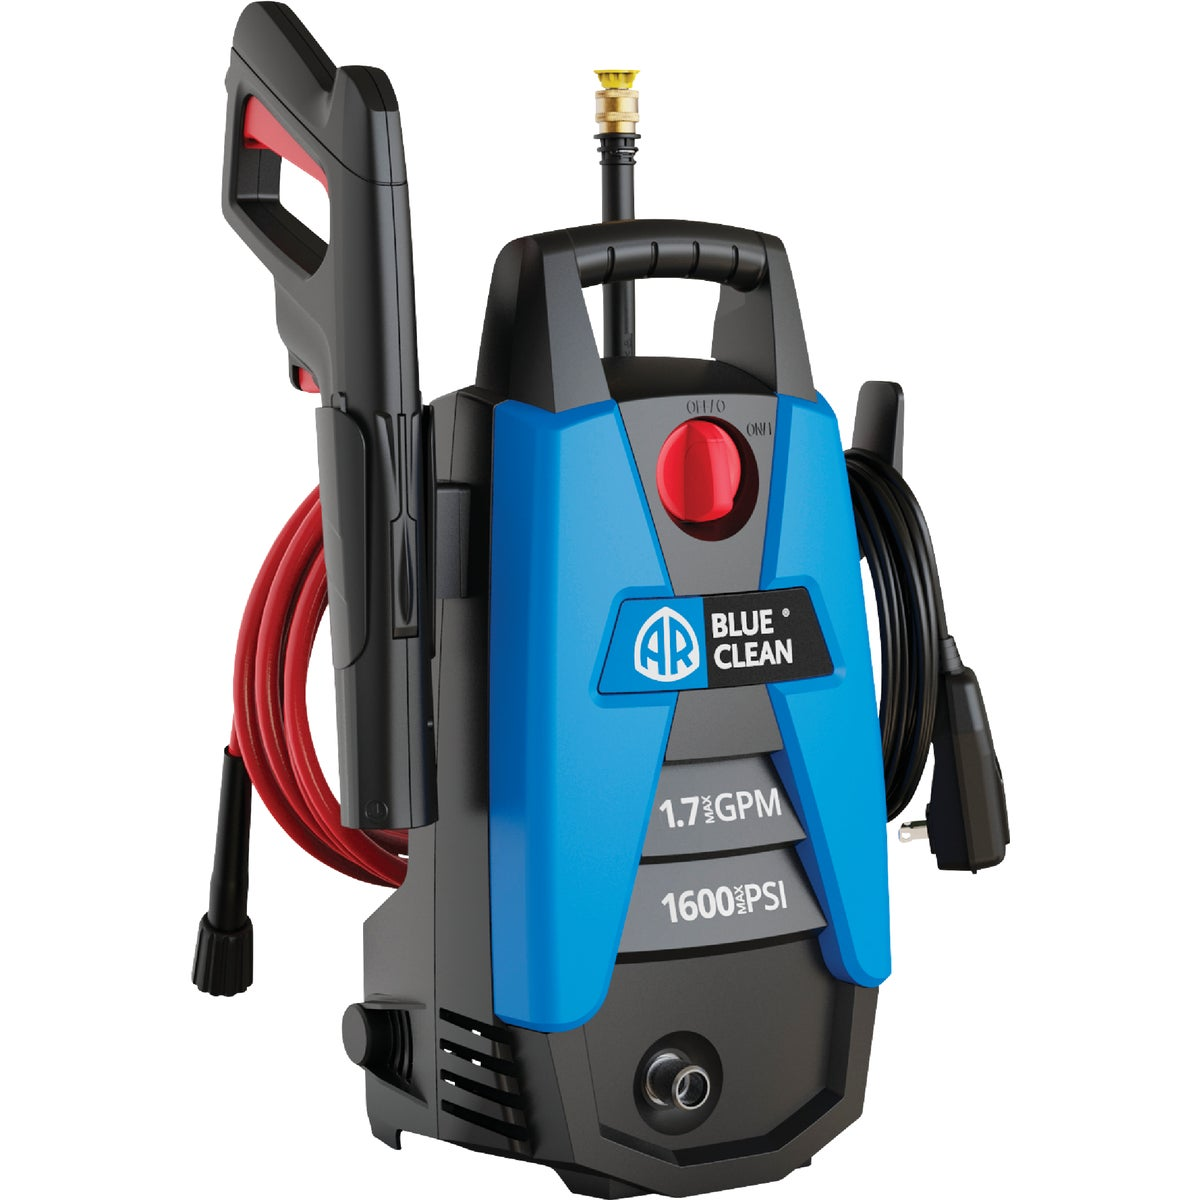 1600PSI PRESSURE WASHER - AR112 by Ar Blue Clean